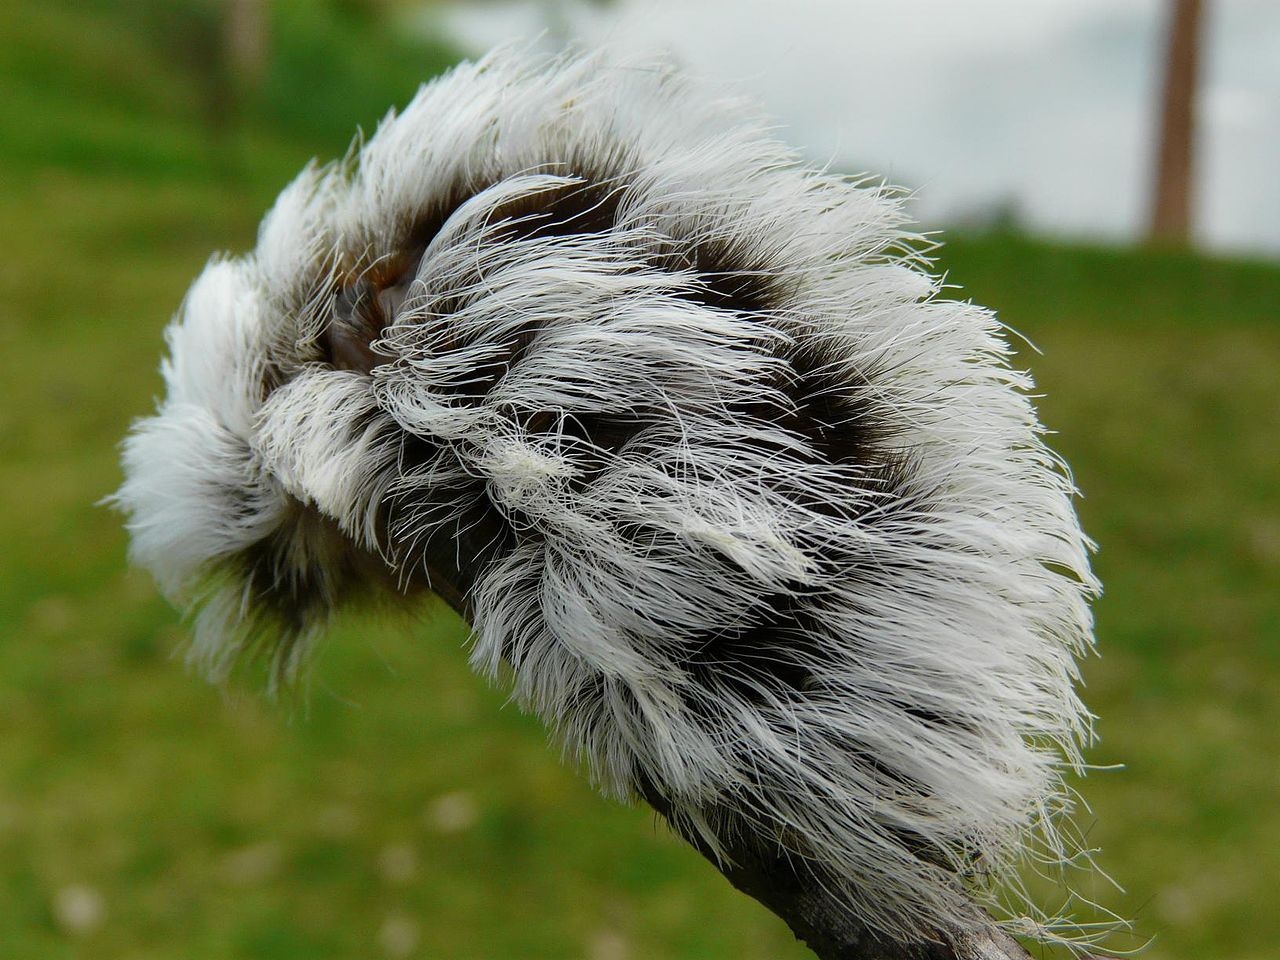 The larvae of Megalopygidae moths are called Puss Caterpillars, and with their long hairs, resemble cotton balls. They have venomous spines that can cause a painful sting and inflammation lasting for several days. In some cases, the sting may cause headache, nausea, and shock-like symptoms.